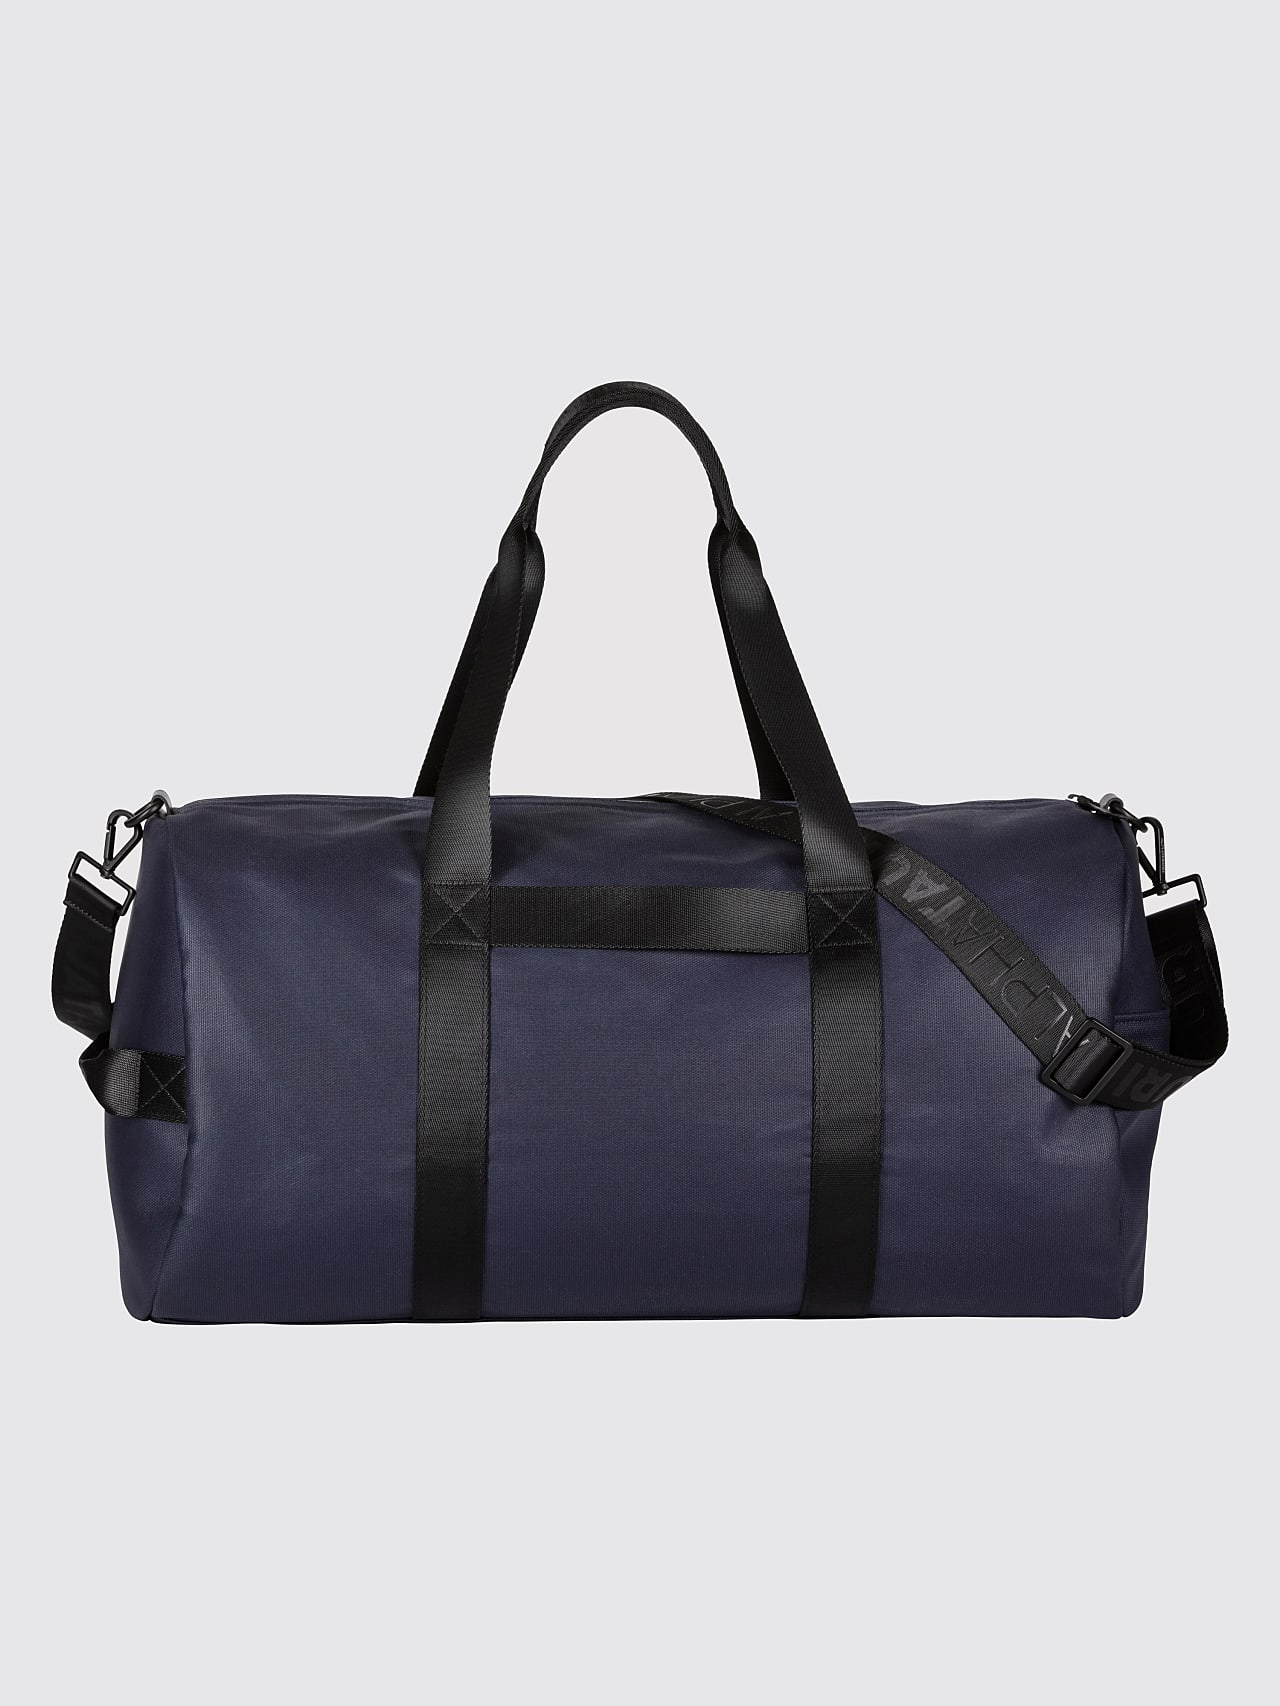 AWEE V3.Y5.01 Water-Resistant Duffle Bag navy Left Alpha Tauri